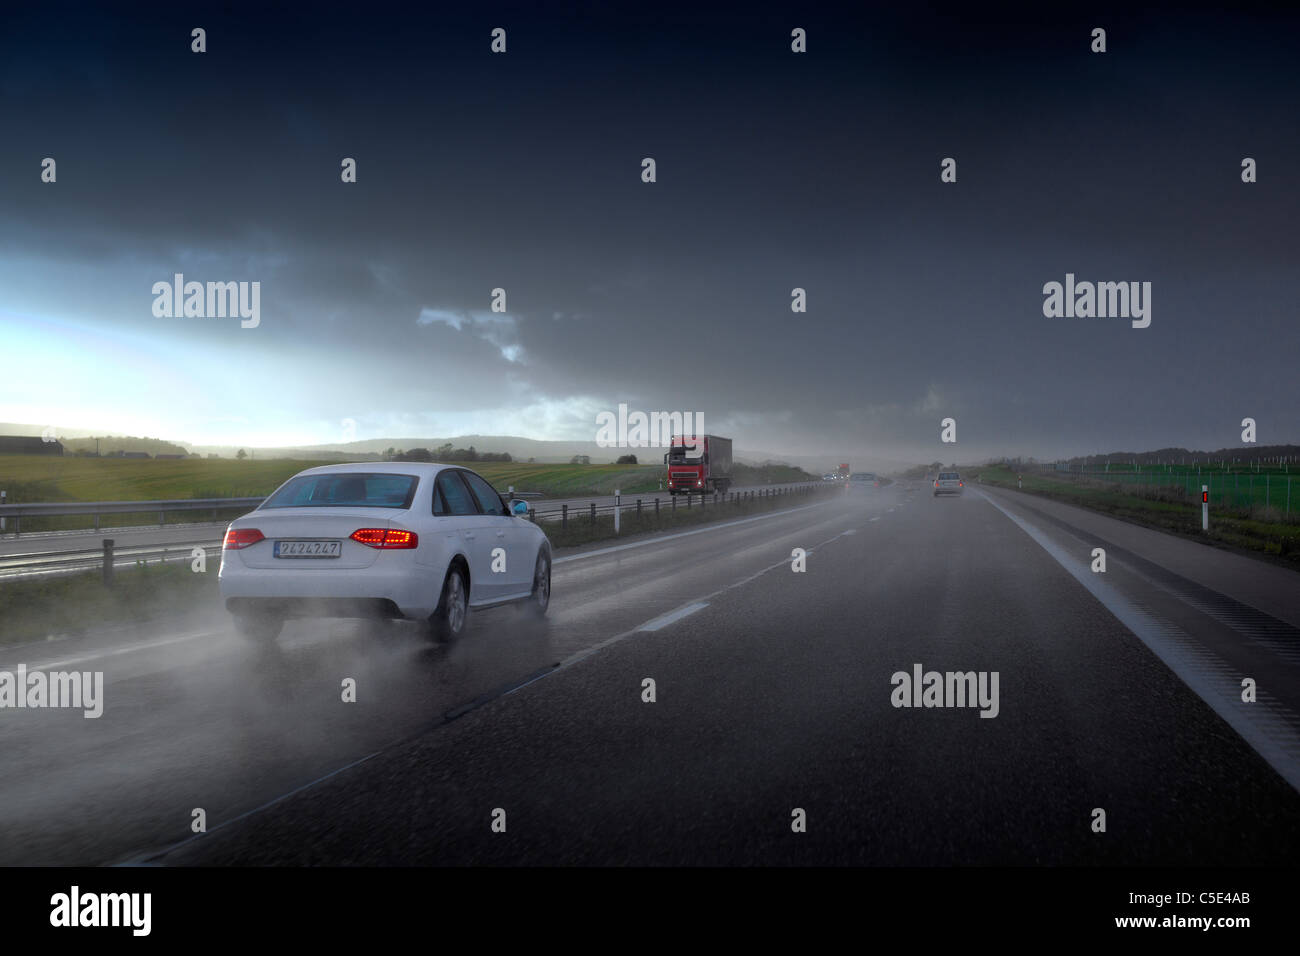 View of vehicles on the asphalt road against cloudy sky on a rainy day - Stock Image